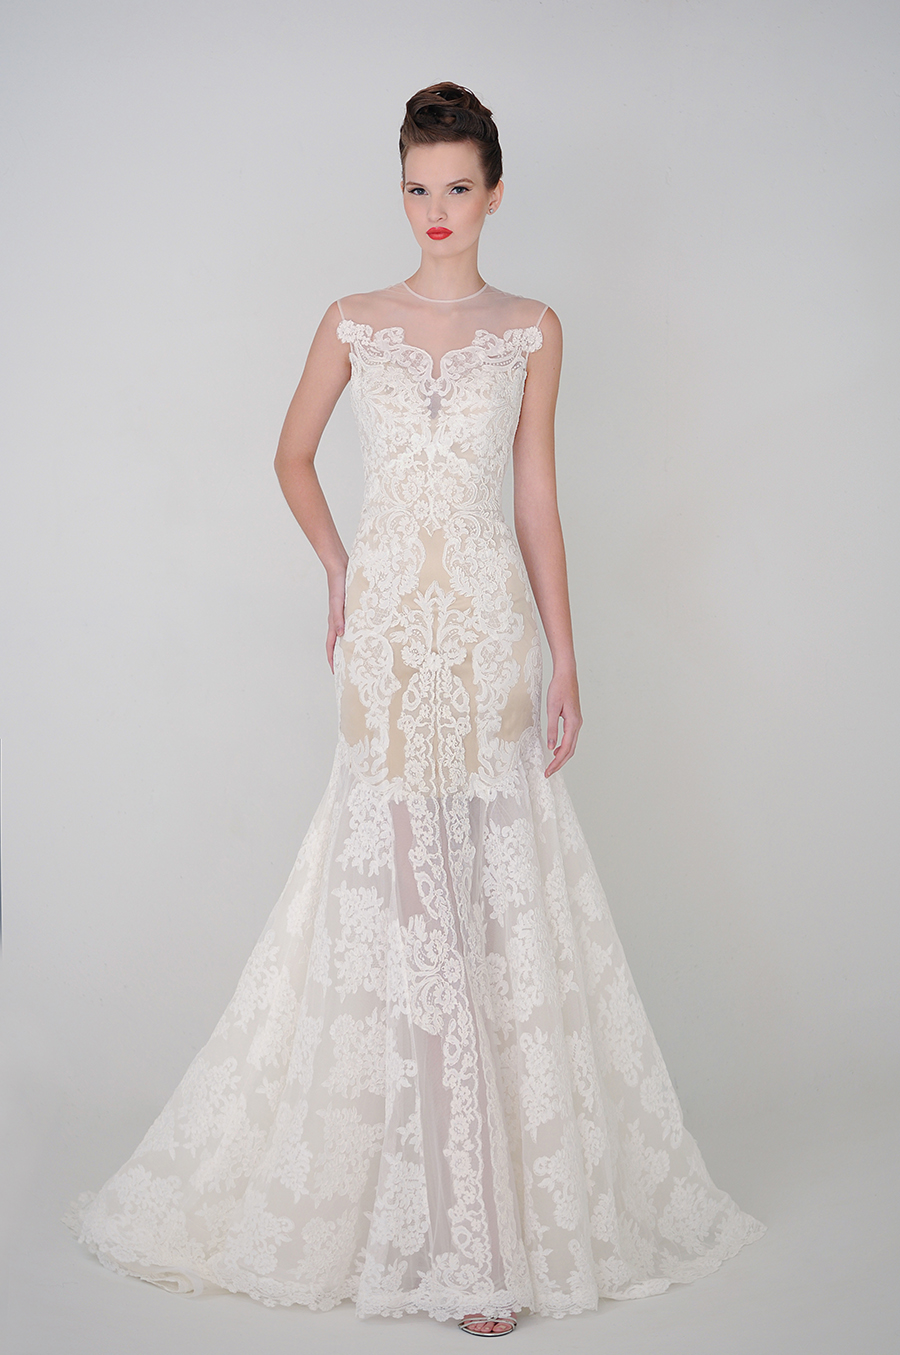 Eugenia Couture Wedding Dresses 2015 Spring - MODwedding